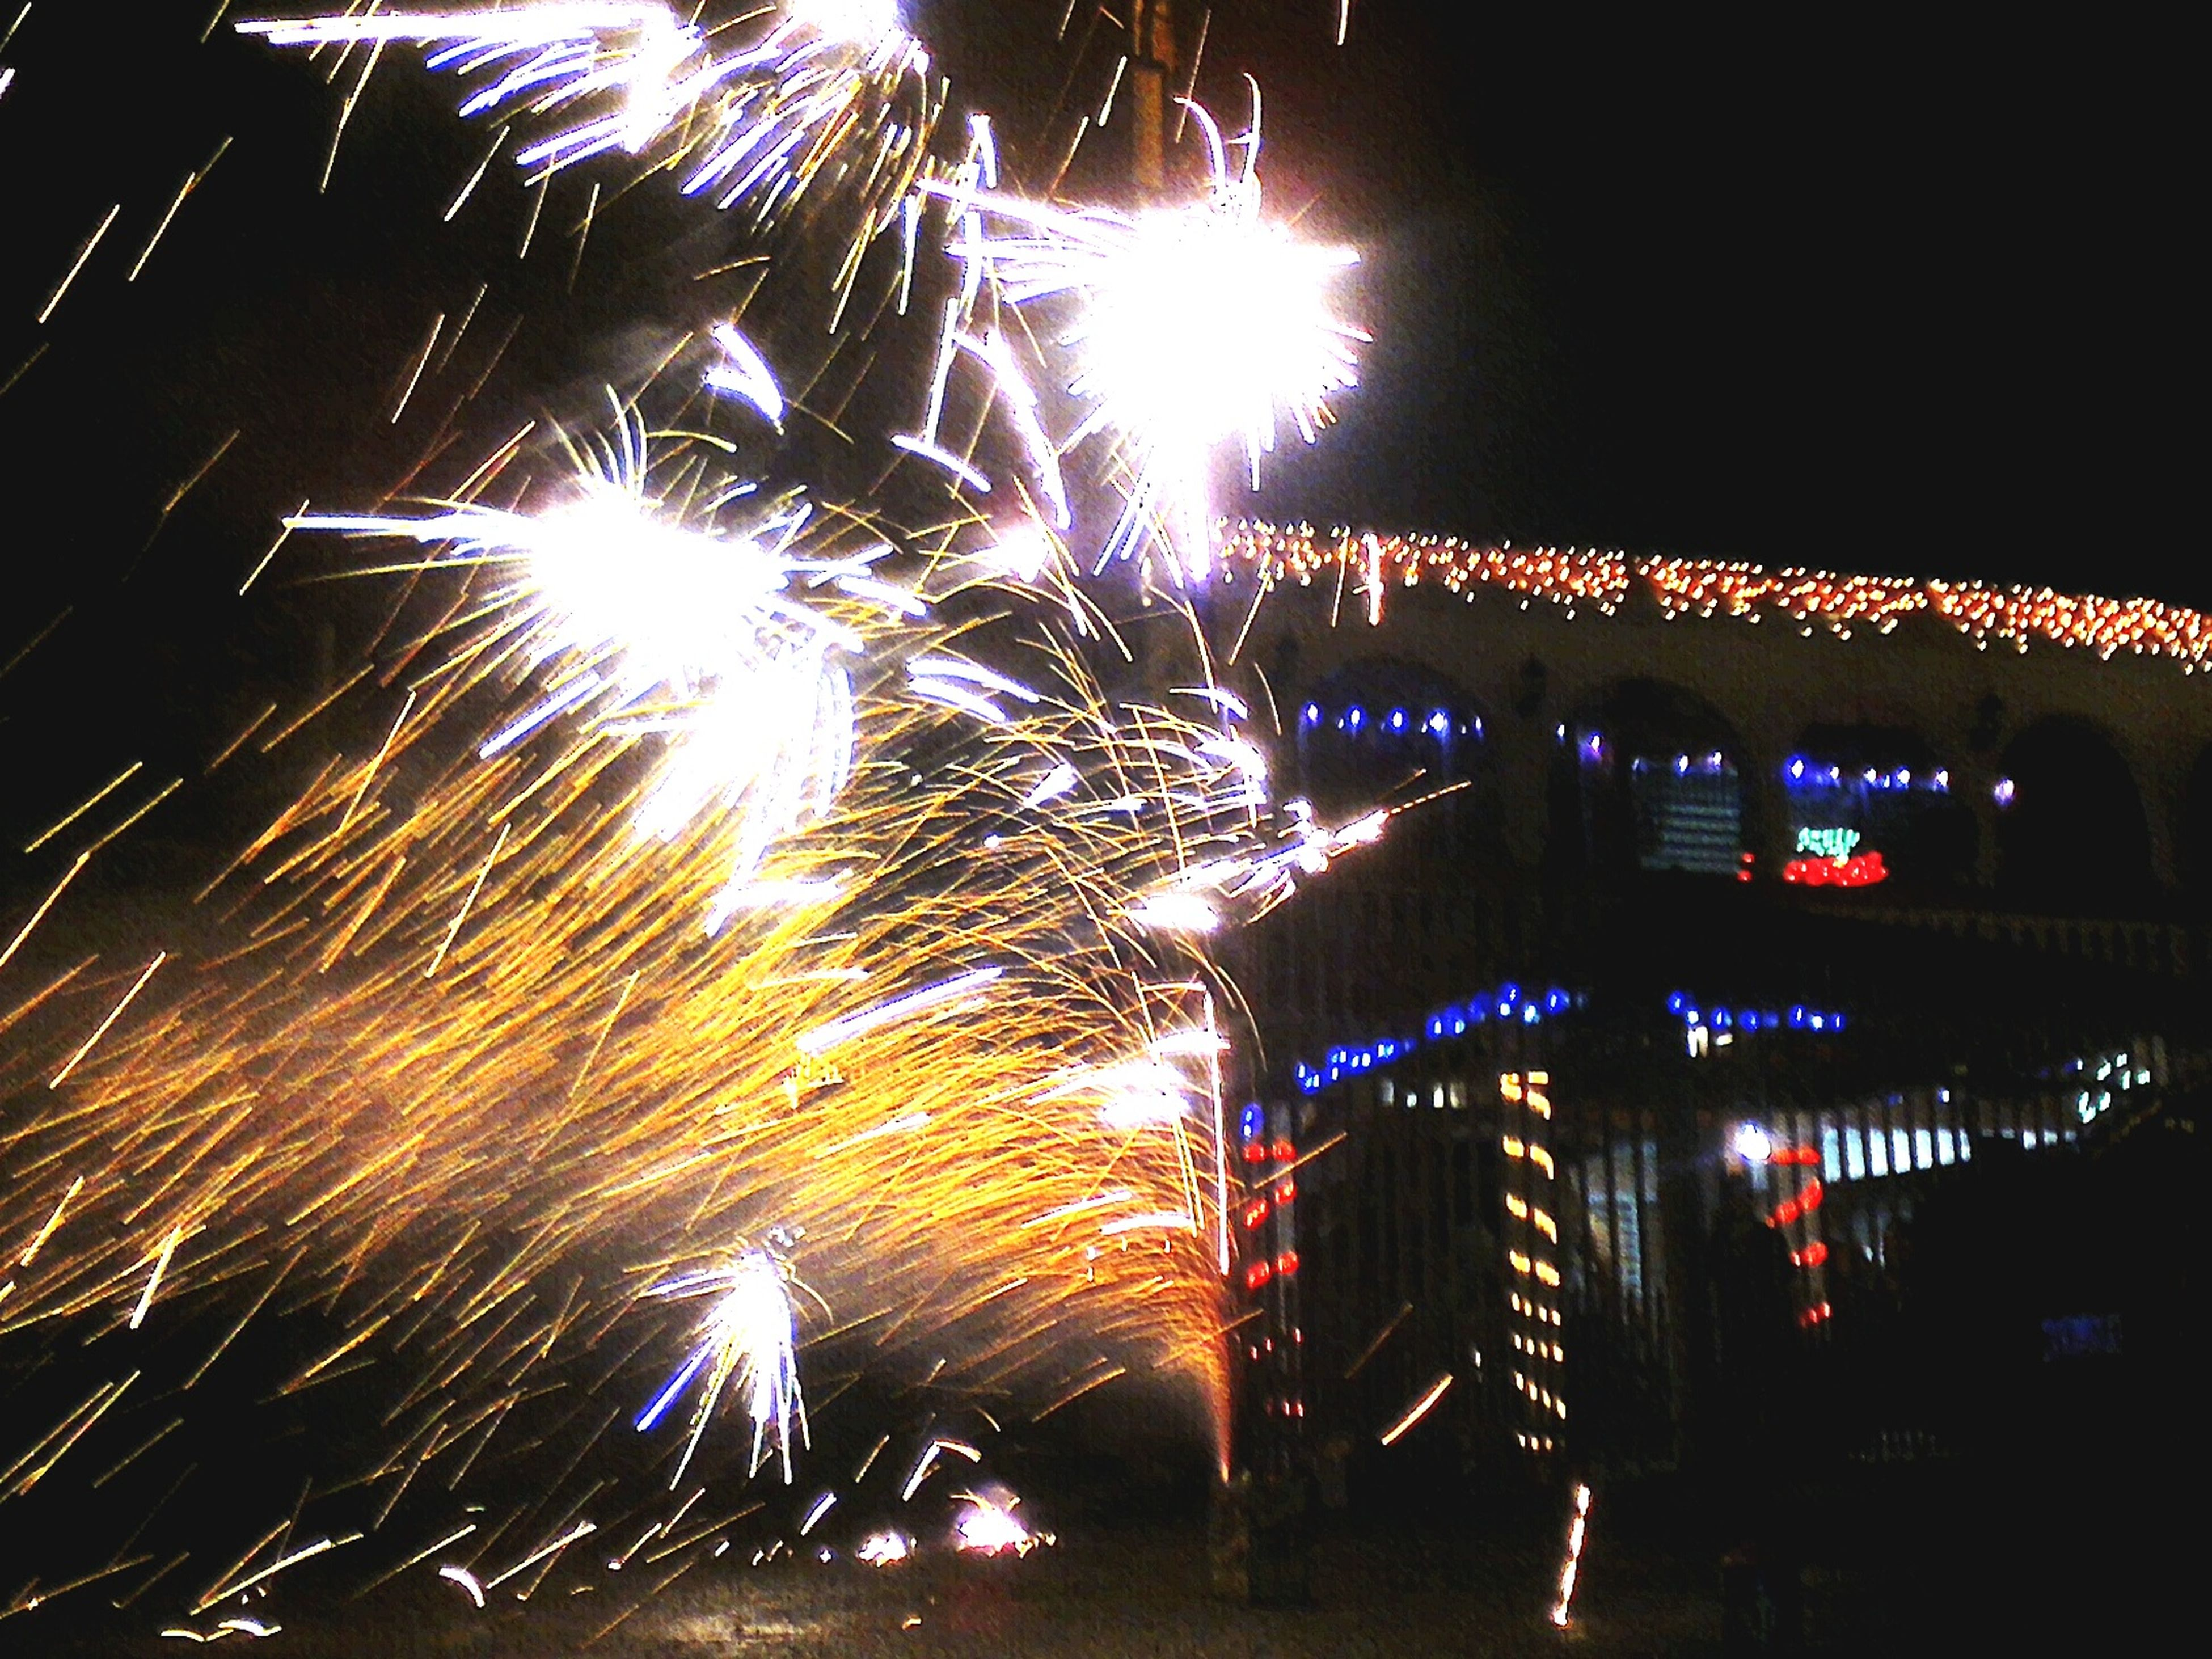 night, illuminated, glowing, long exposure, lighting equipment, built structure, architecture, building exterior, street light, firework display, celebration, motion, city, light - natural phenomenon, exploding, low angle view, dark, firework - man made object, outdoors, sky